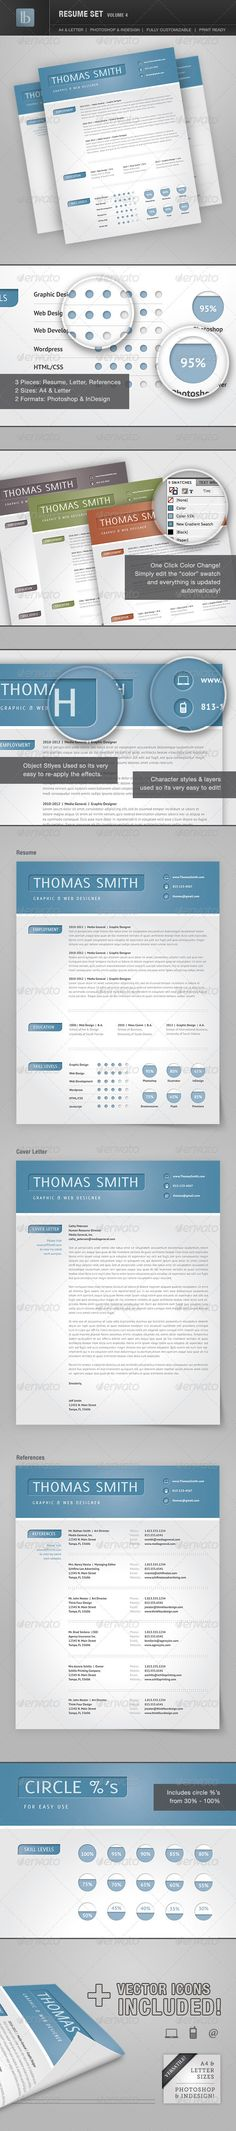 Junior Resume   Cv Template InDesign, INDD, MS Word A4 Resume - resume template indesign